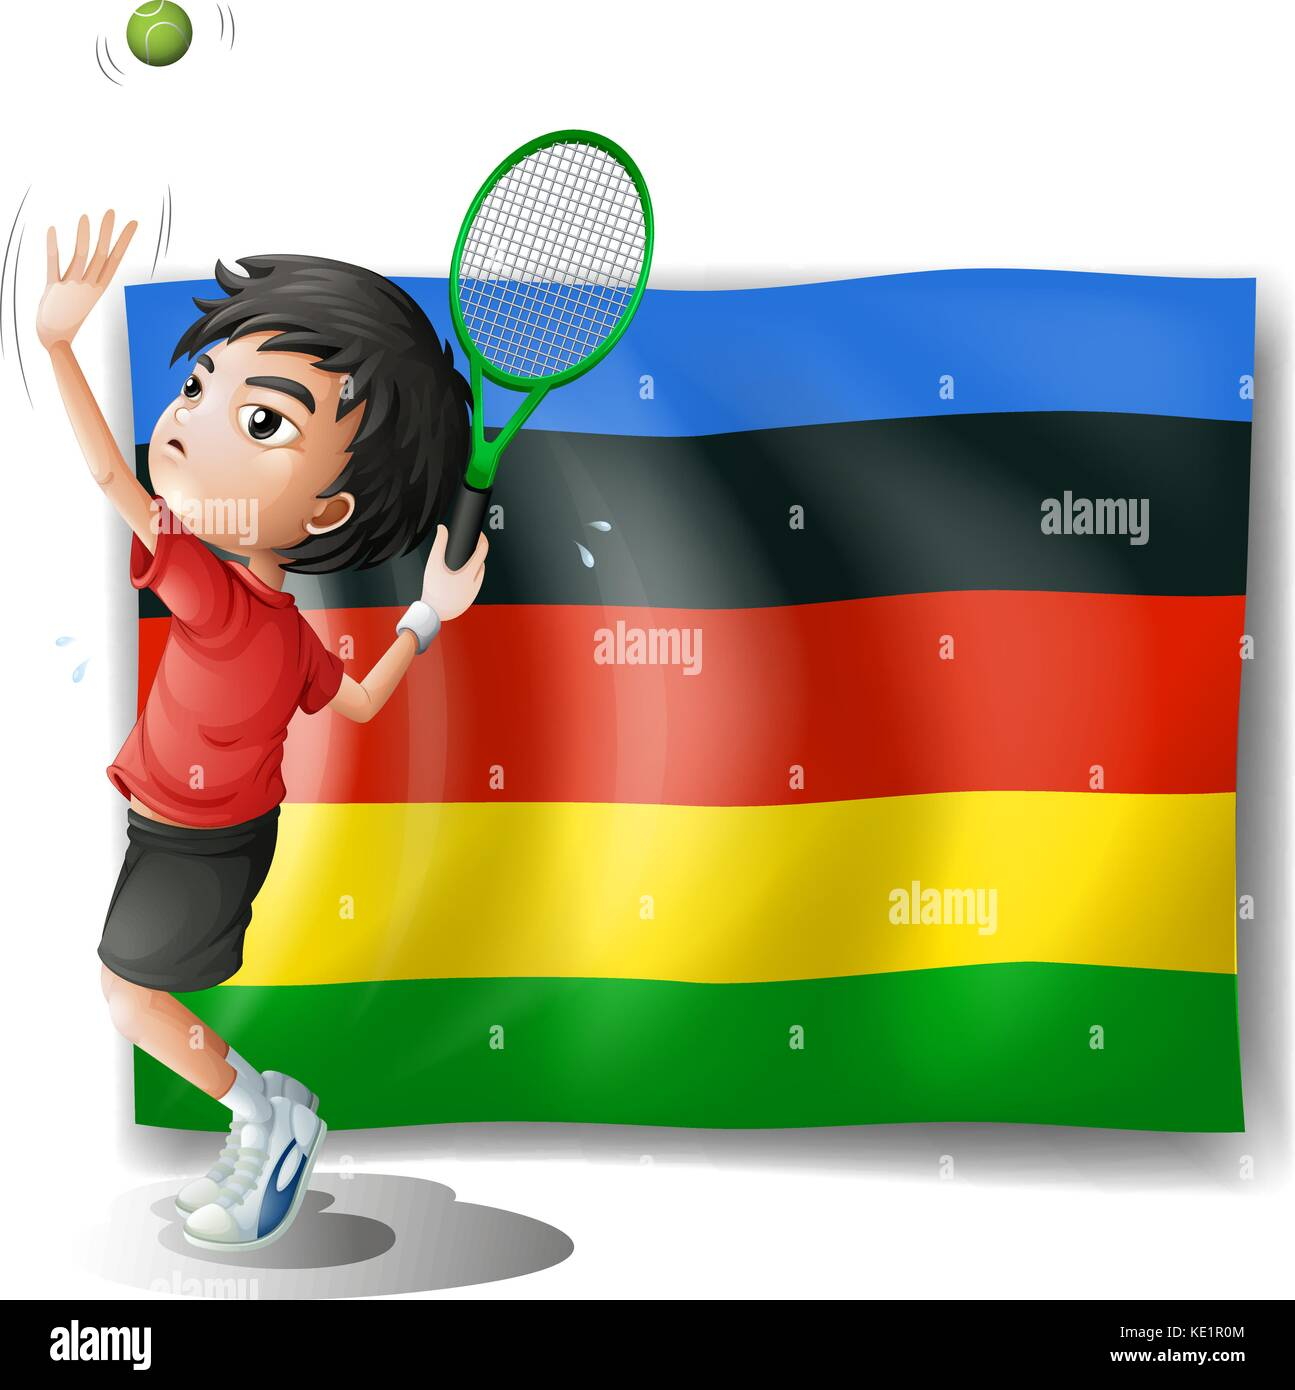 Olympics flag with tennis player illustration - Stock Vector